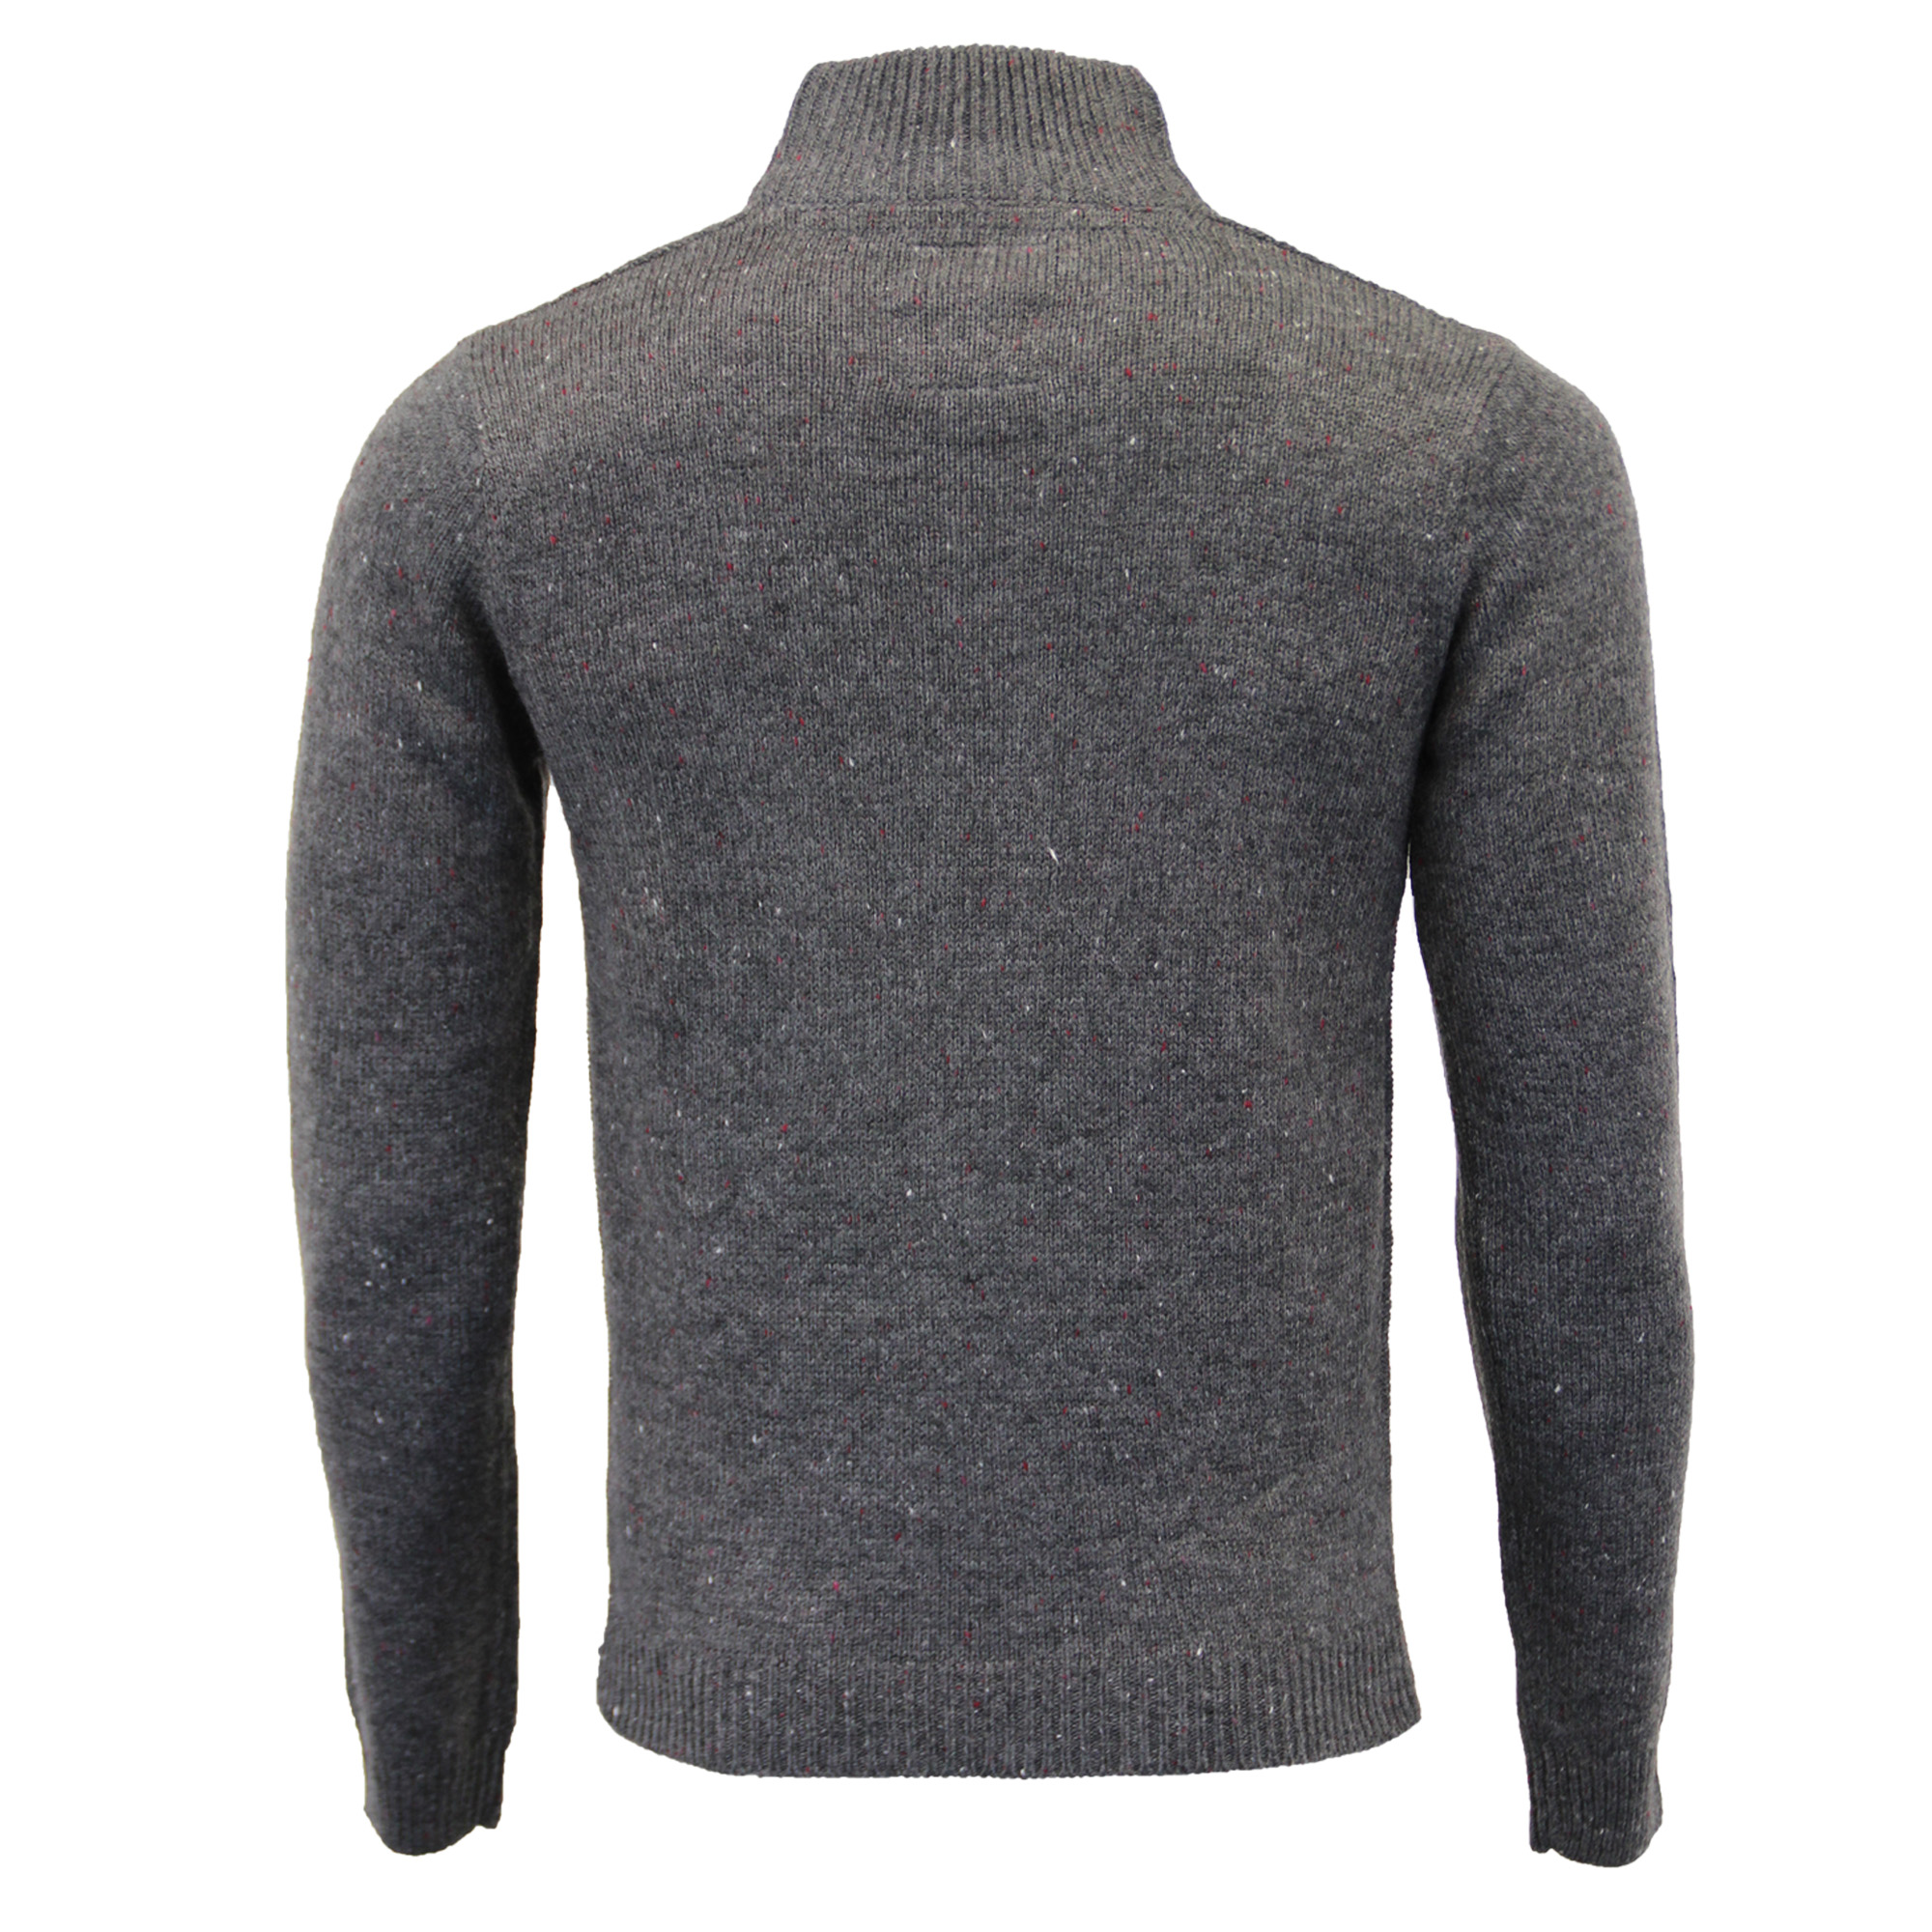 Mens-Wool-Mix-Jumper-Threadbare-Knitted-Sweater-Pullover-Top-Chunky-Zip-Winter thumbnail 12